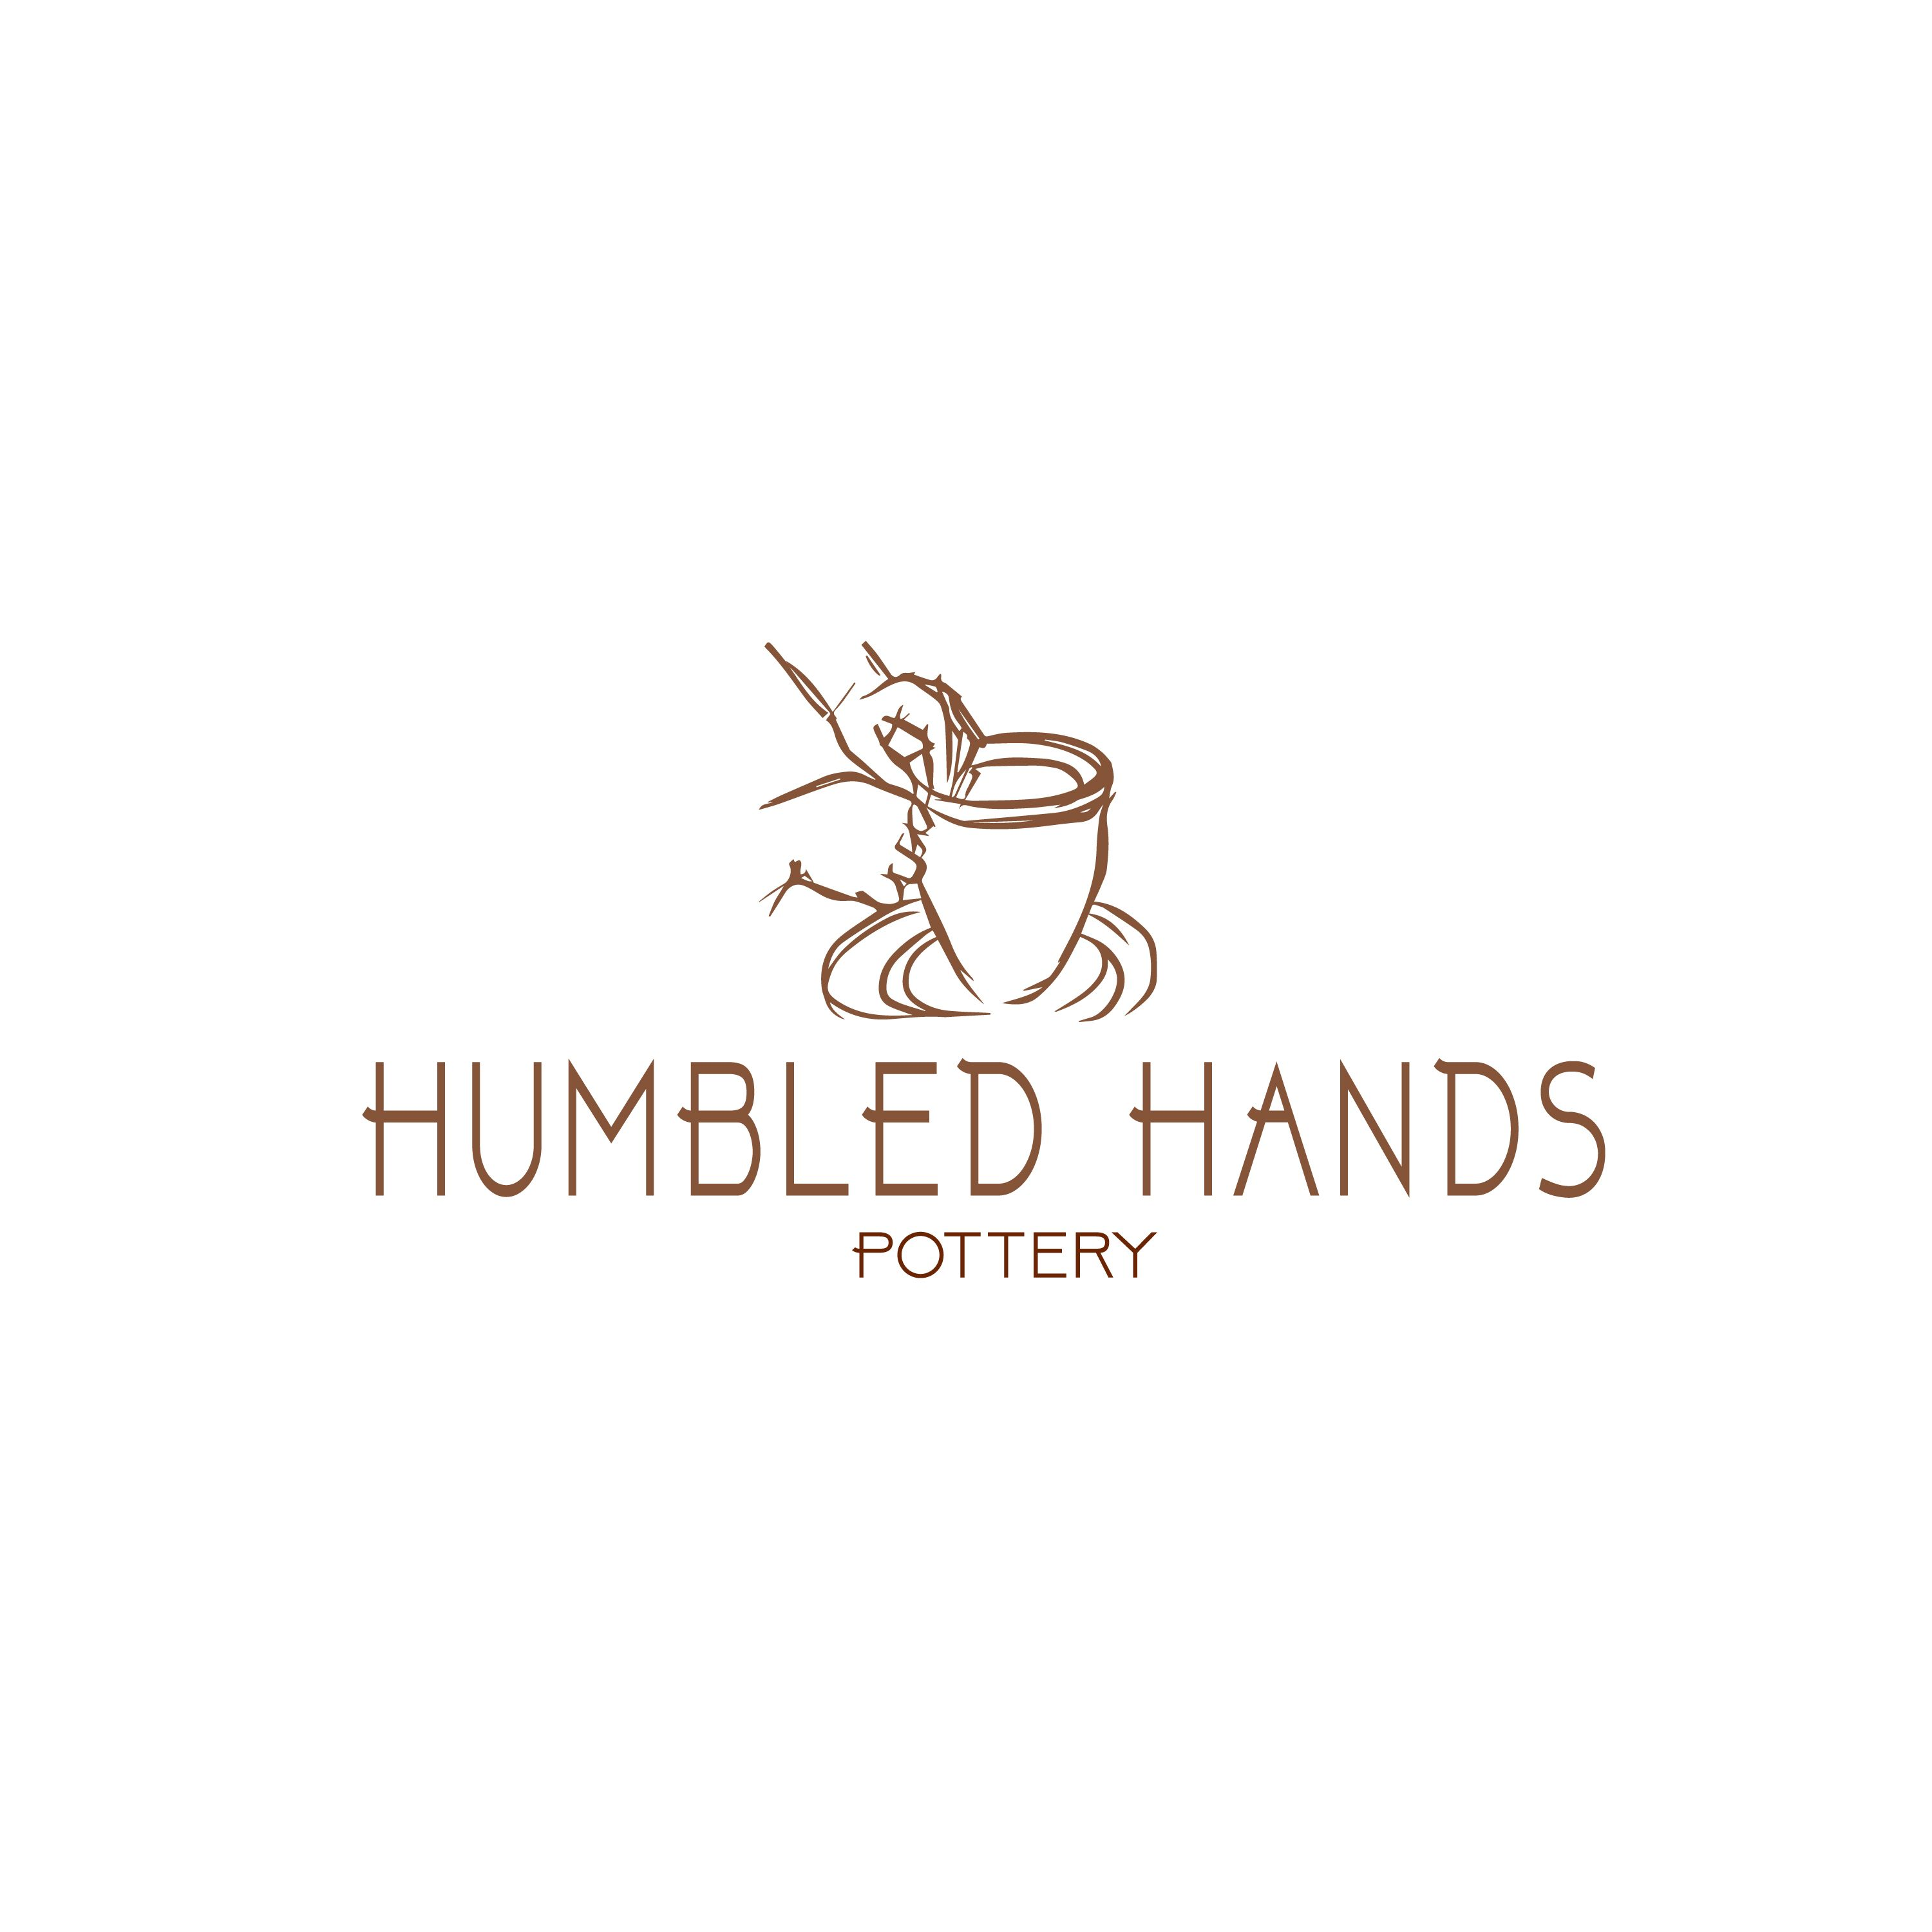 Humbled Hands Pottery